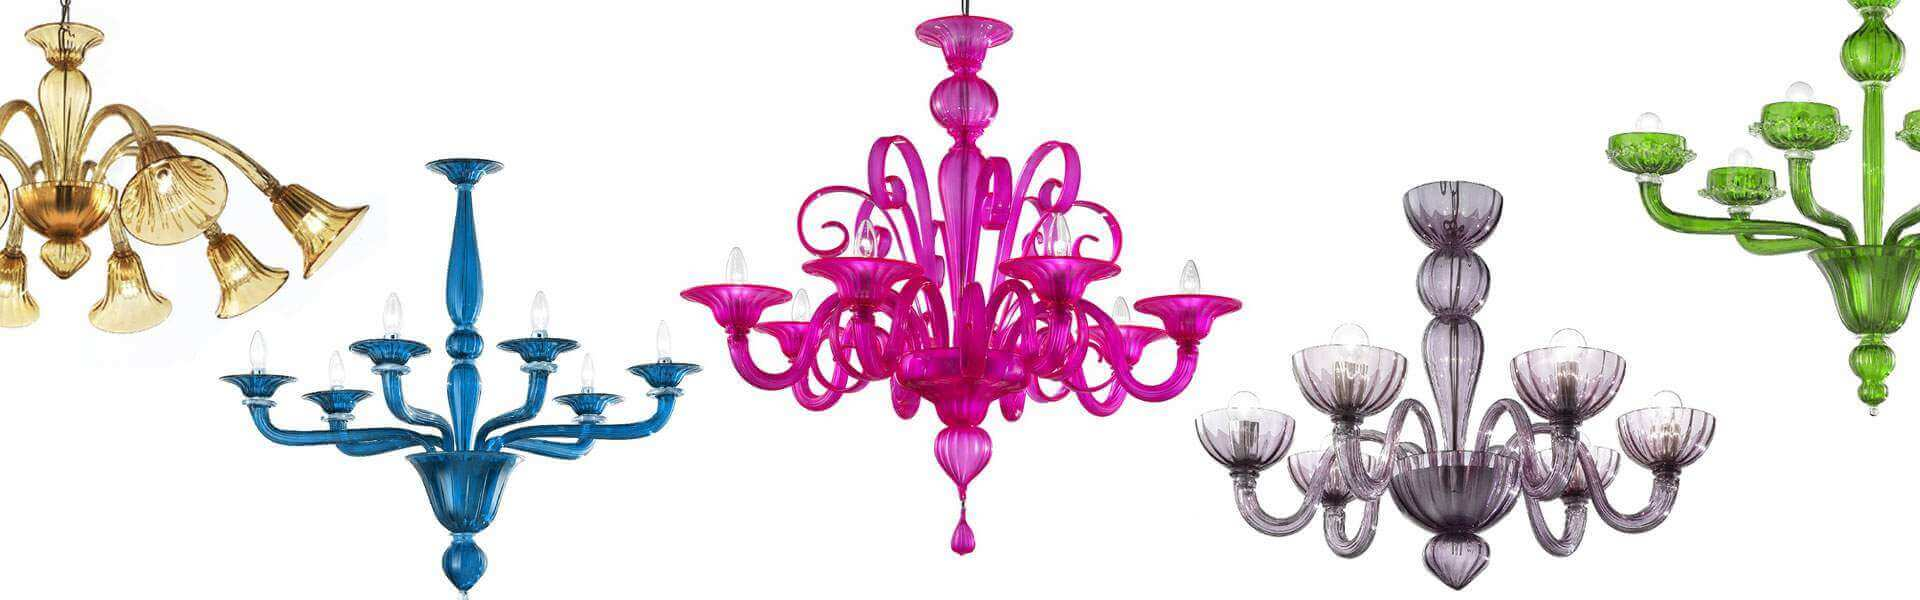 Small Simple Chandelier Murano Chandeliers Murano Glass Chandeliers For Sale From Italy